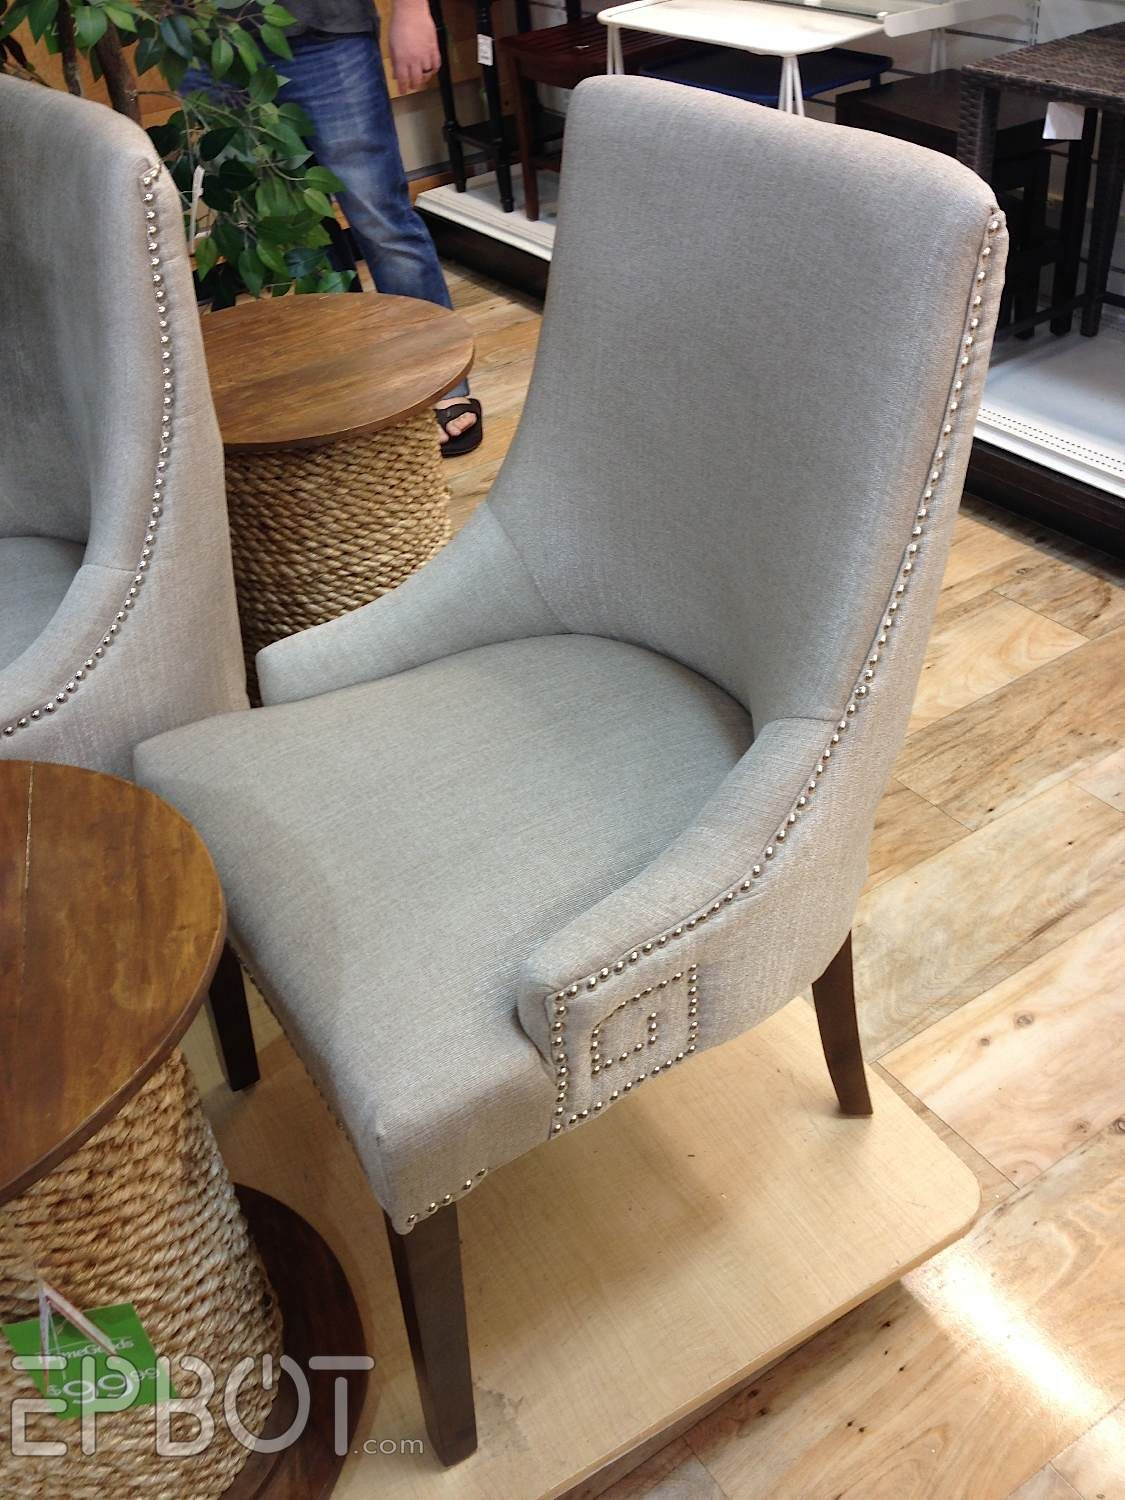 Nice Home Dec Far East Ltd Home Goods Chair   Google Search